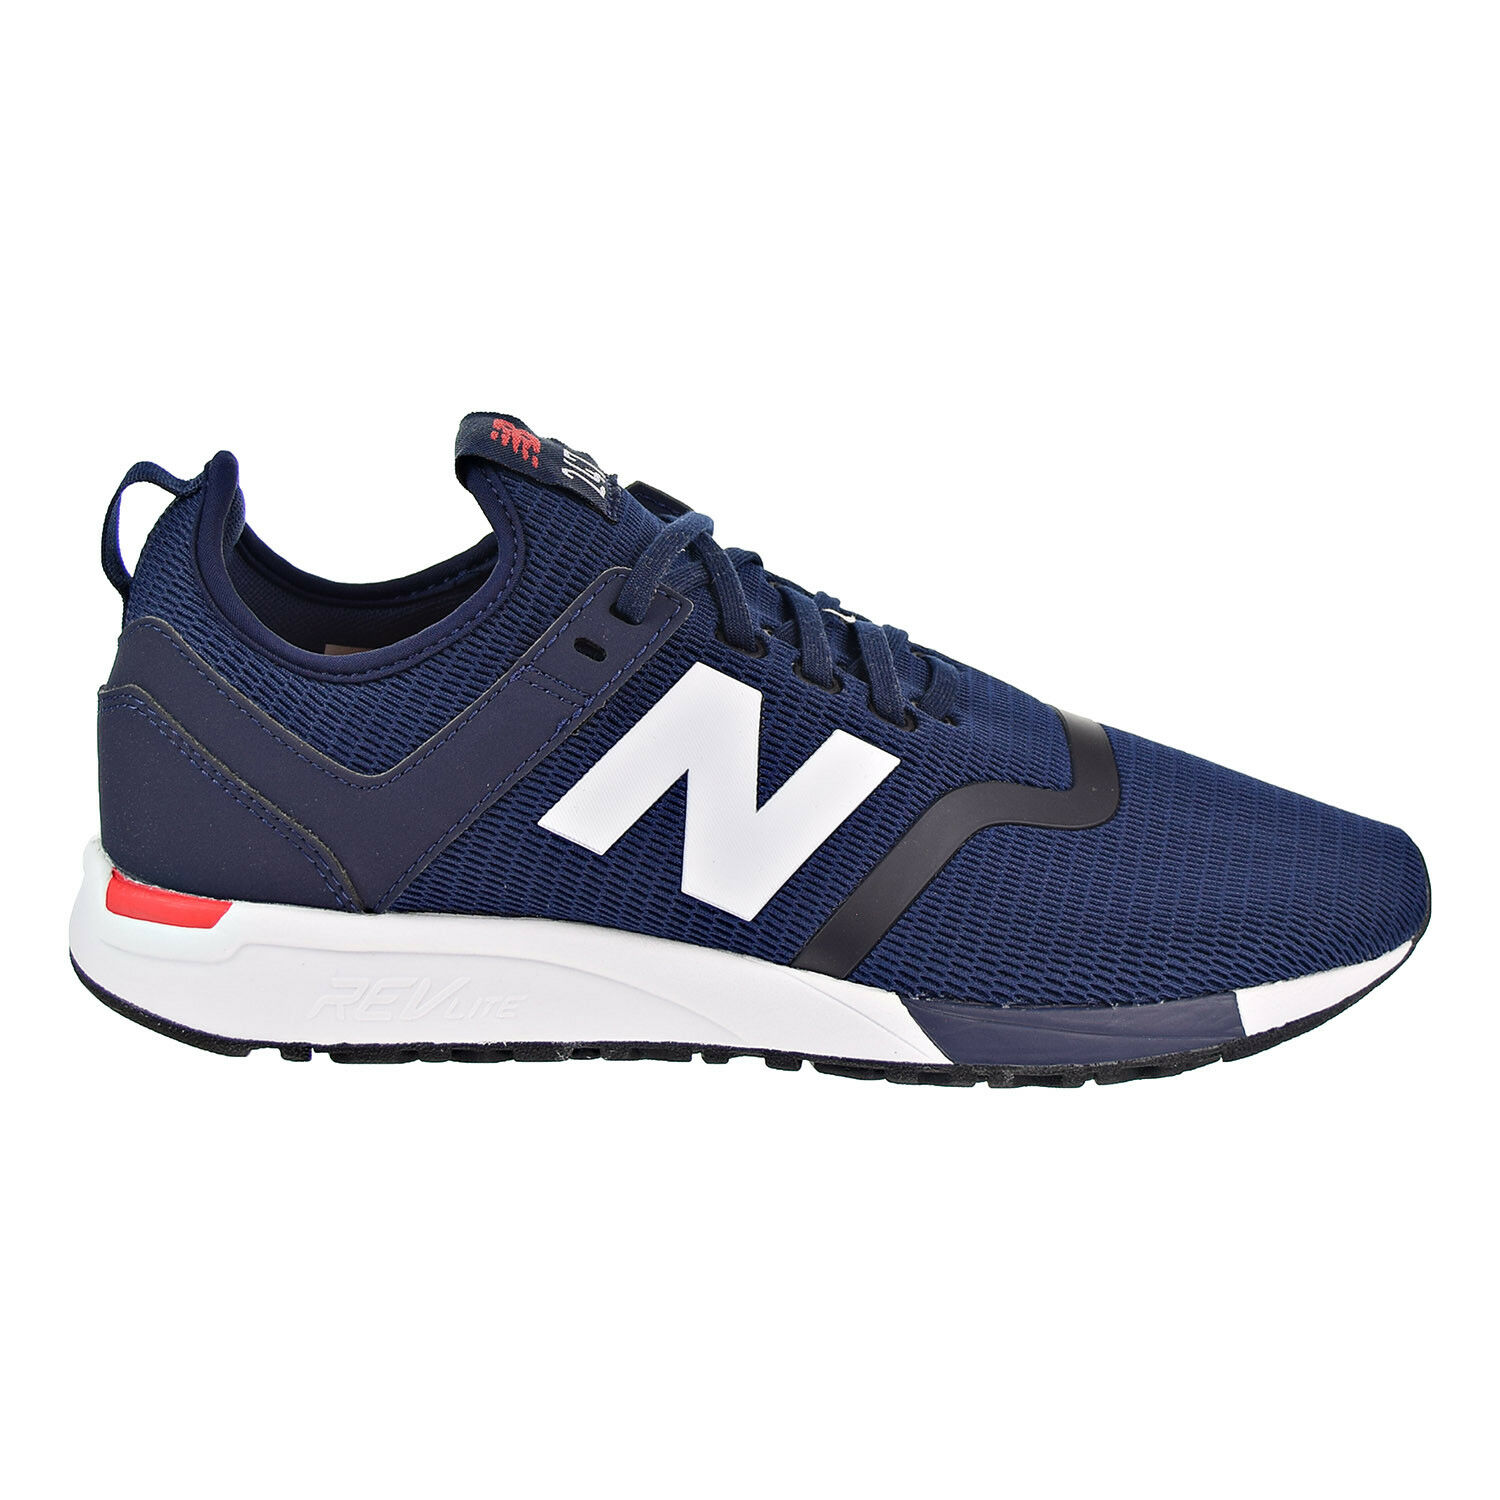 New Balance 247 Decon Men's shoes Navy White Red MRL247-DH